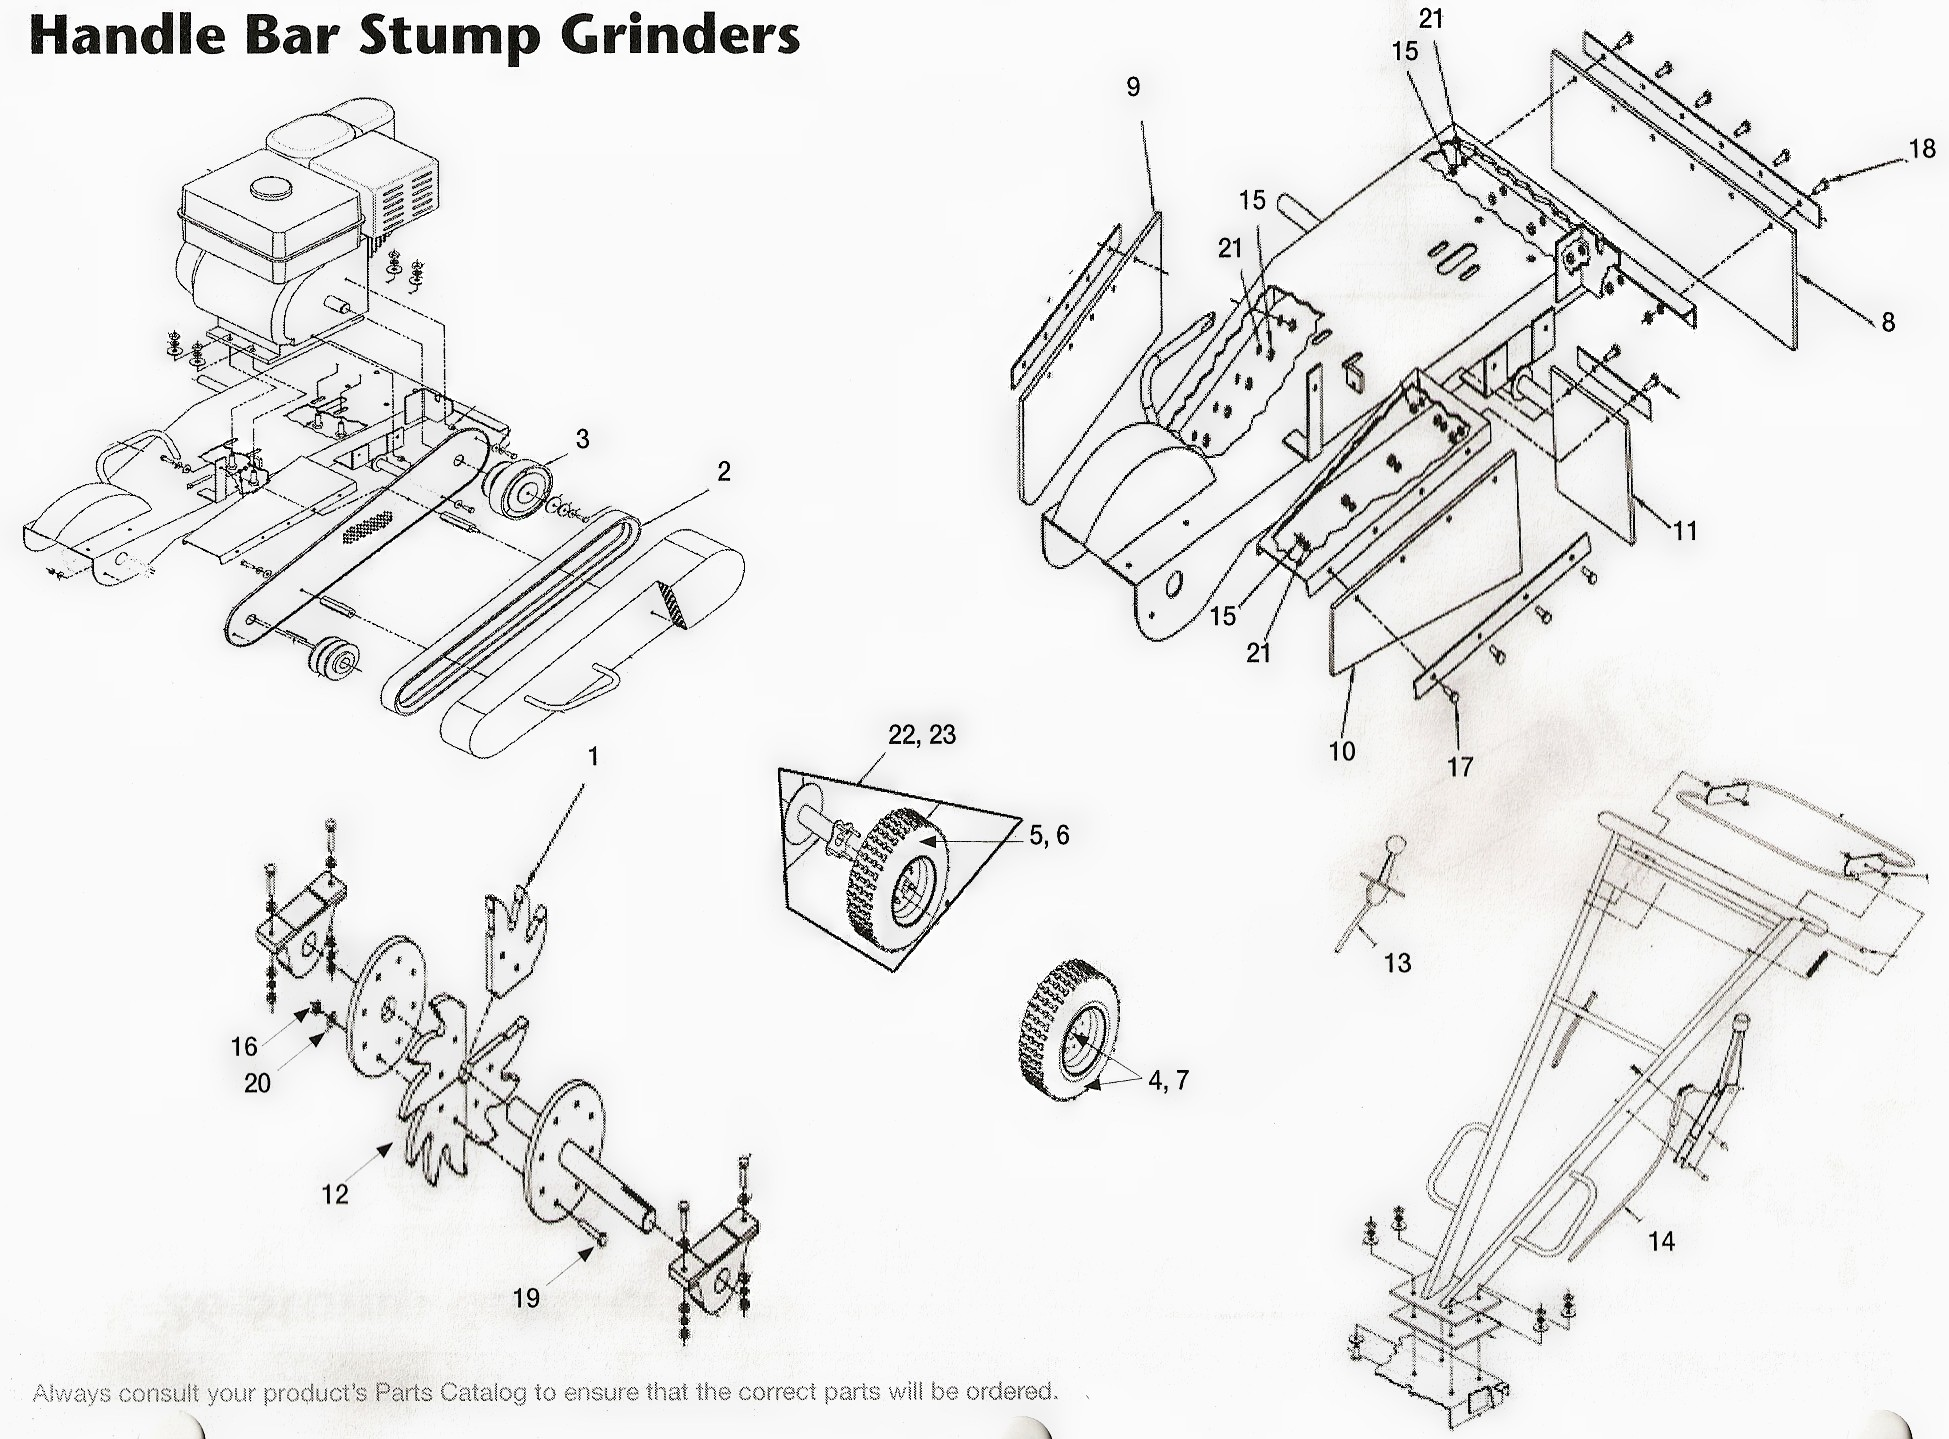 US Praxis Stump Grinder and Toro Handle Bar Stump Grinder Parts Diagram